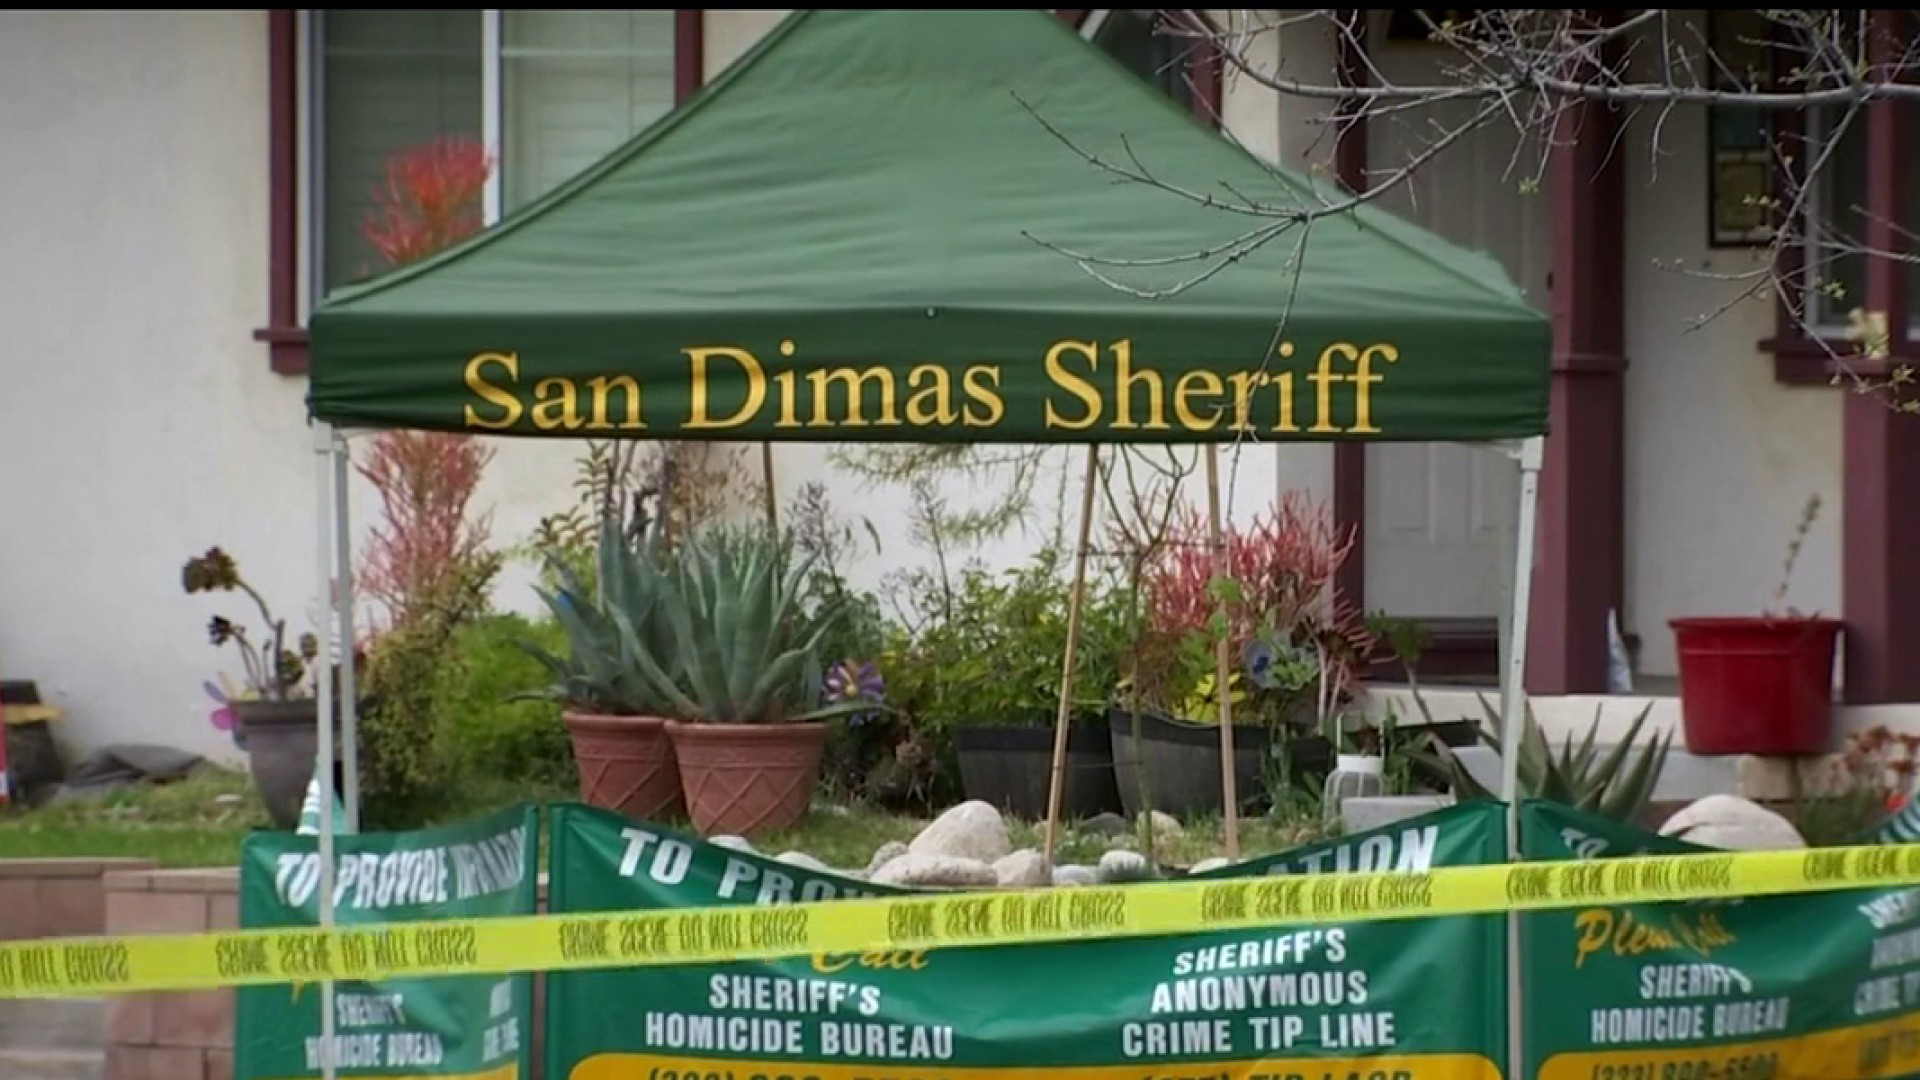 San Dimas Woman brutally stabbed to death while walking her dog  3/26/21